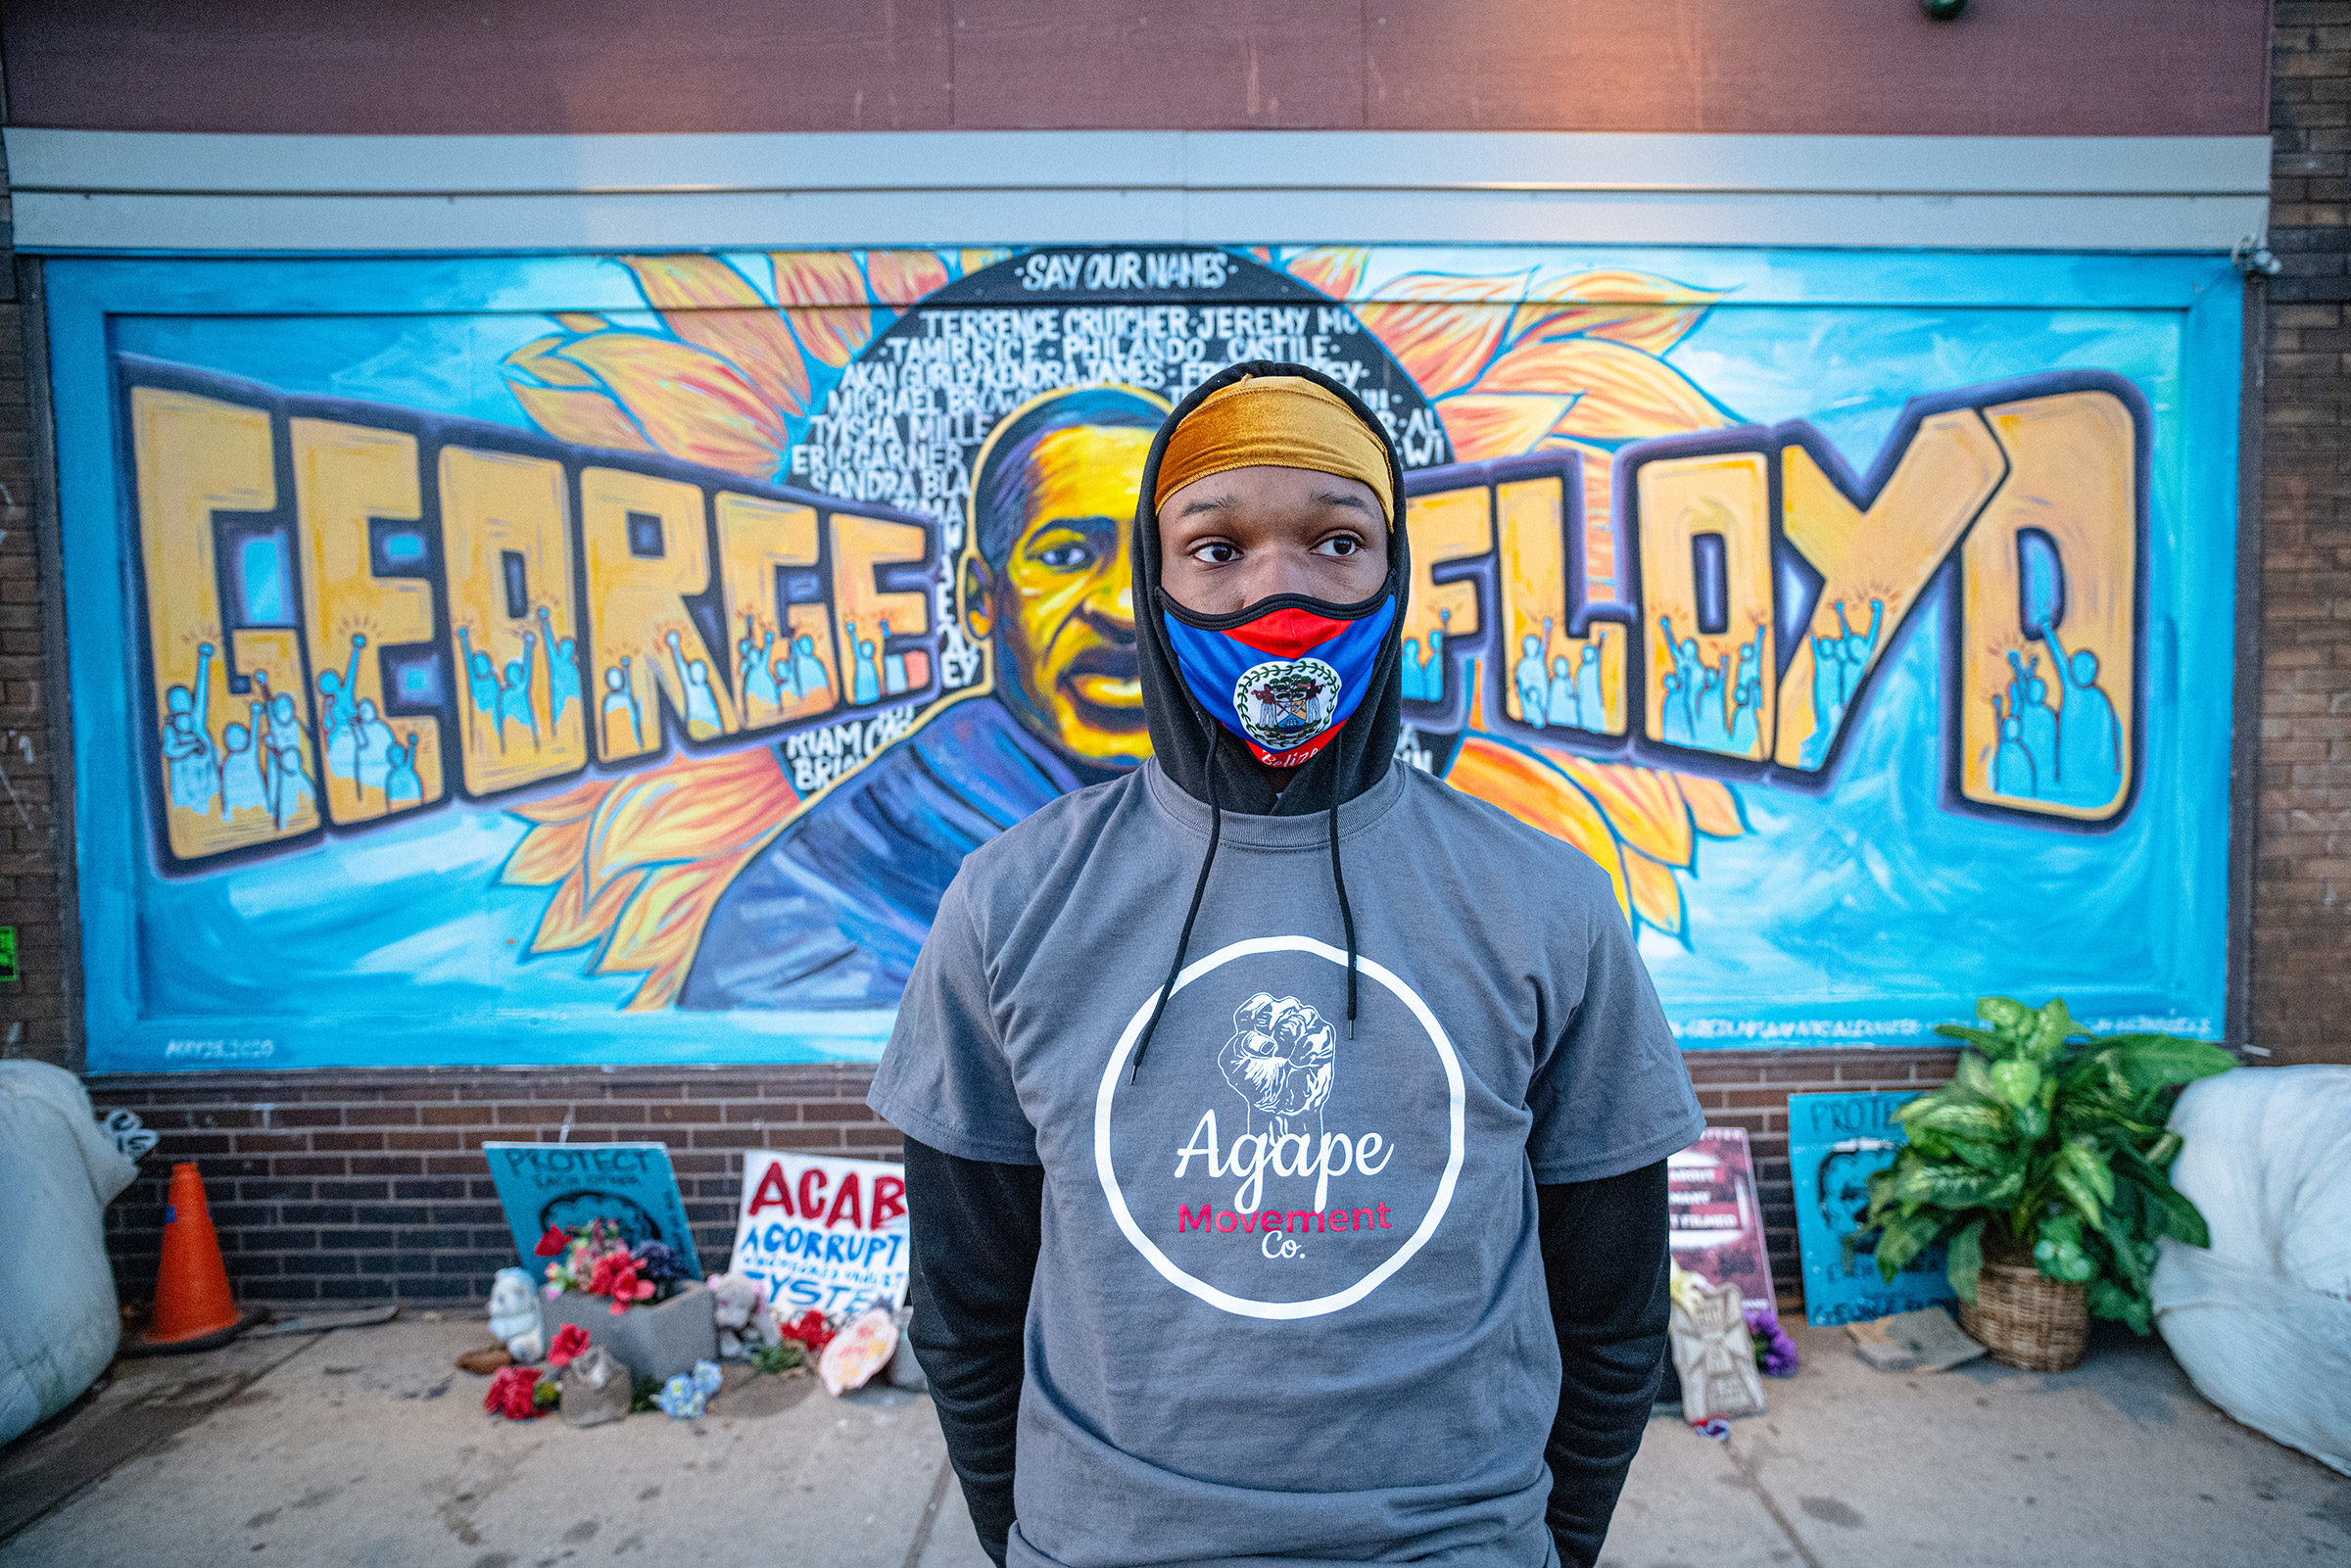 Ijahvonn Waller, 16, stands in front of a mural of Floyd painted on a wall of Cup Foods, near where Floyd died. Waller was preparing to join the members of Agape.